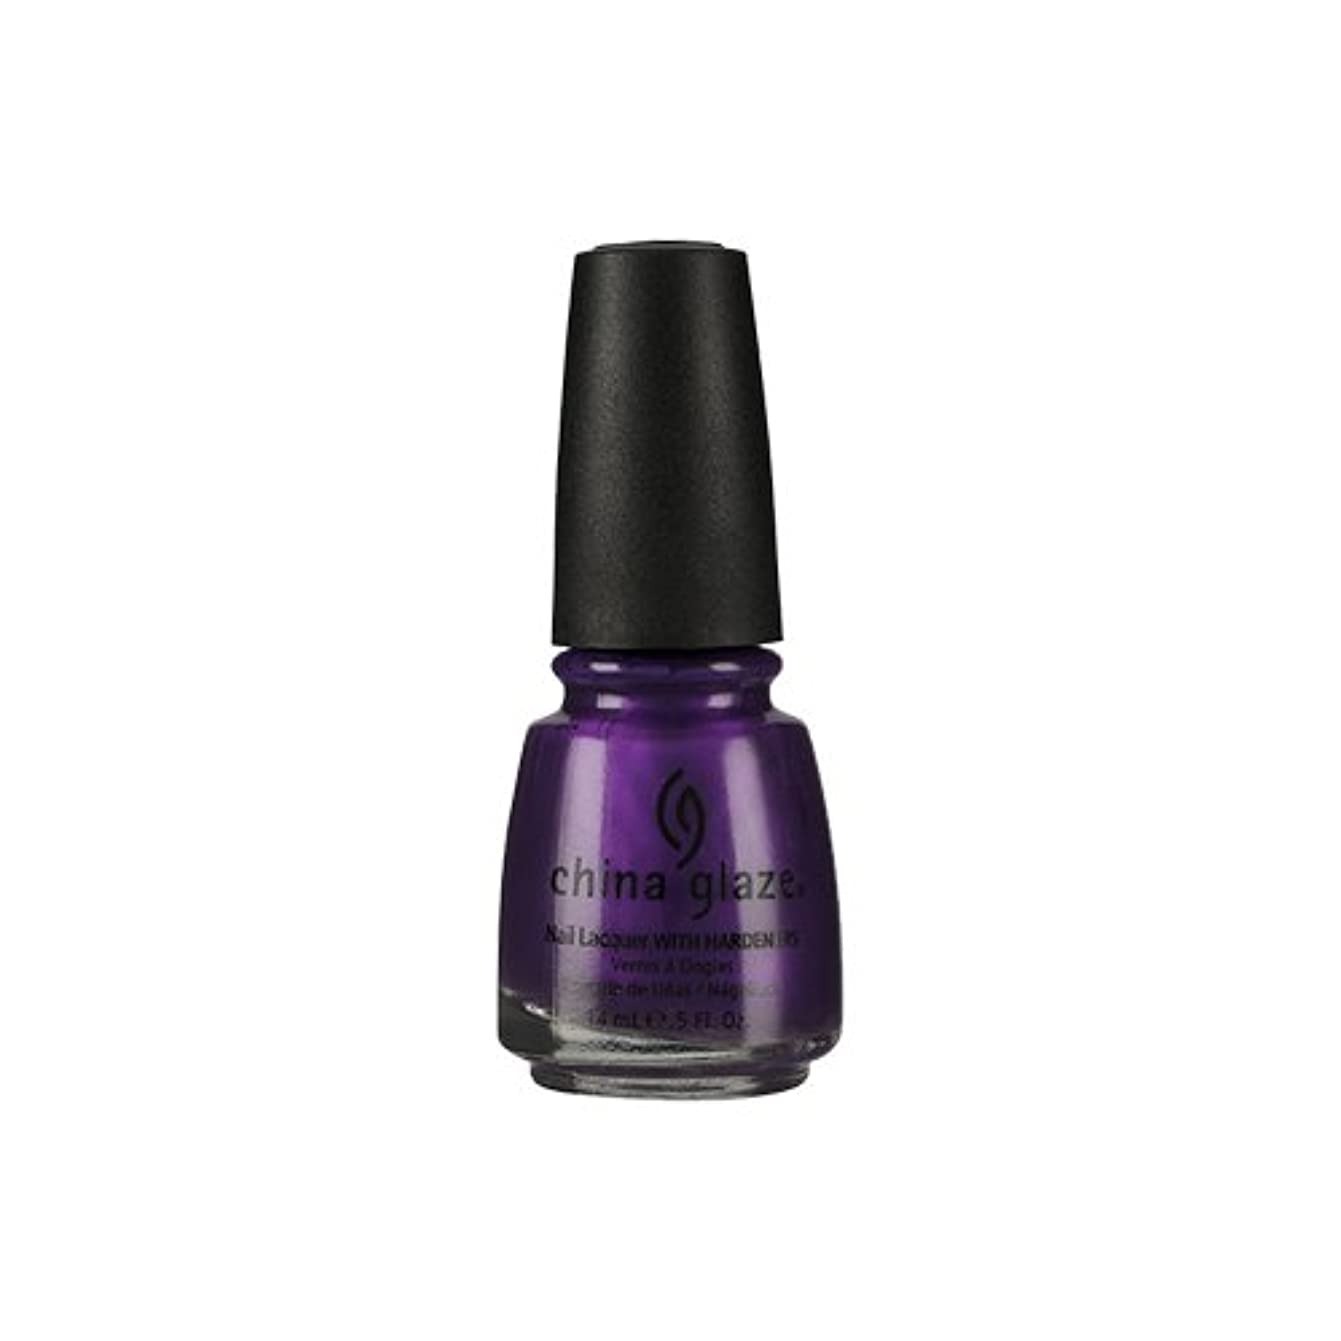 CHINA GLAZE Nail Lacquer with Nail Hardner - Coconut Kiss (並行輸入品)